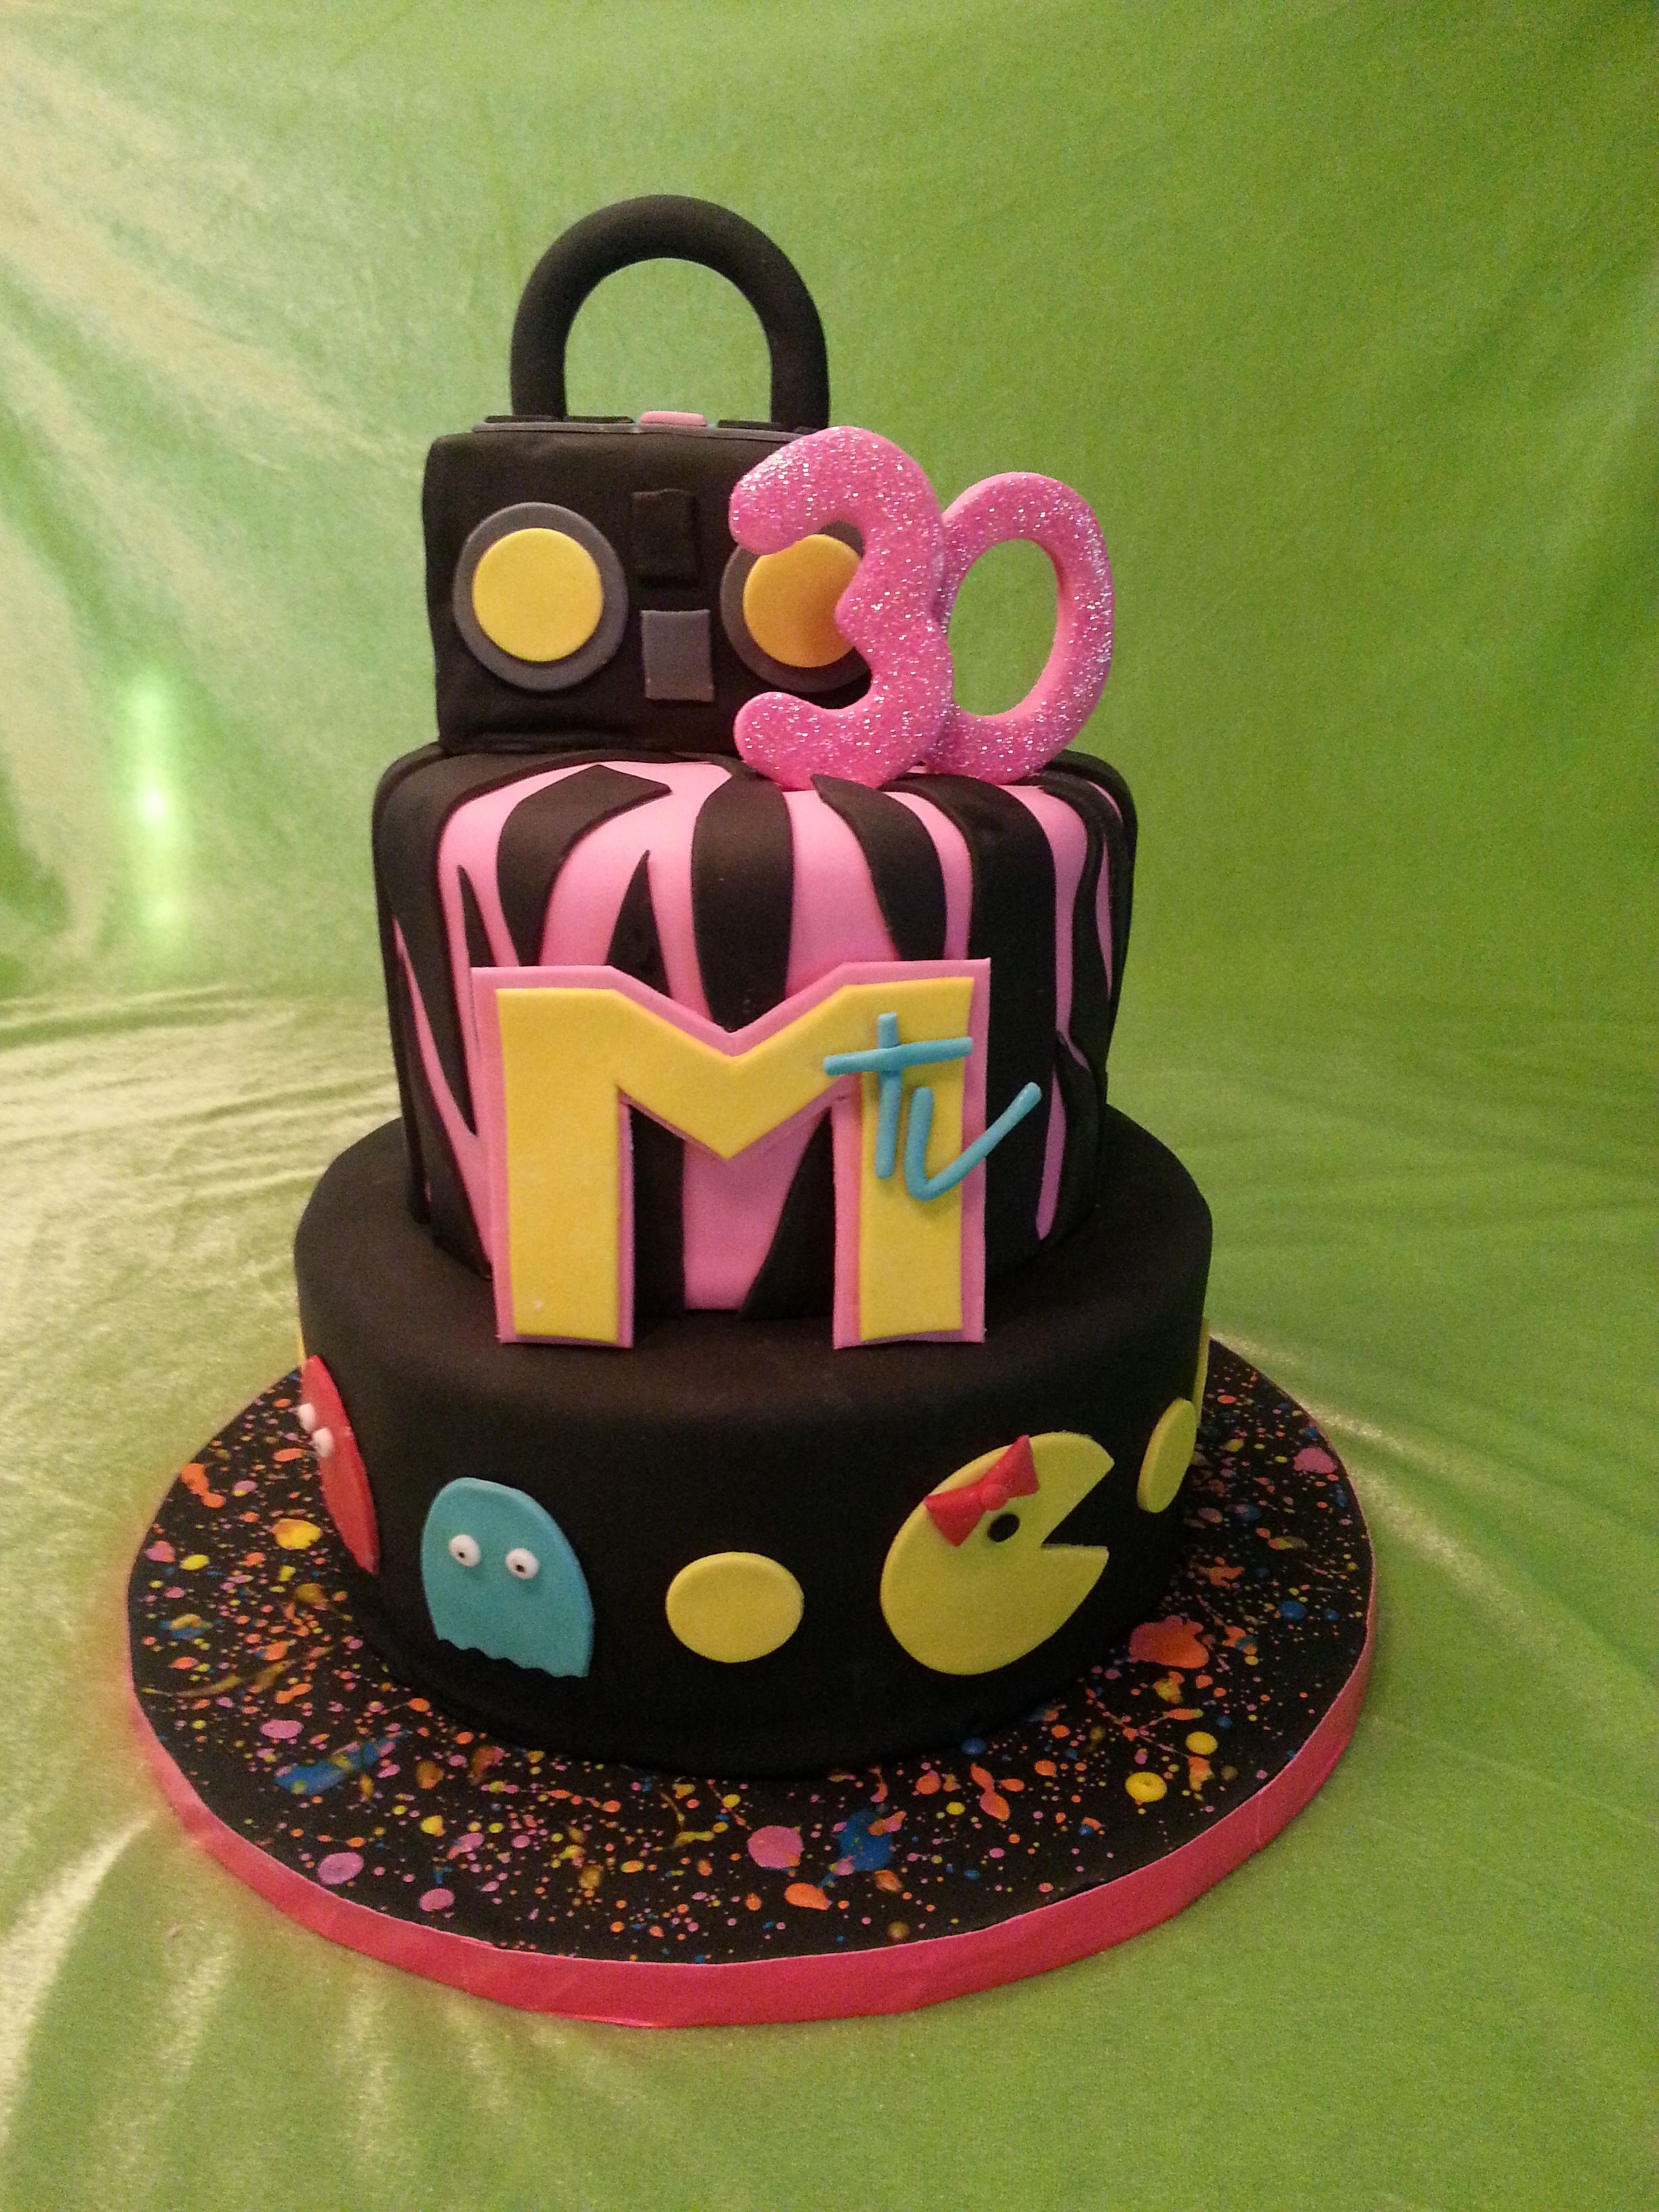 Magnificent 80S Themed Birthday Cake Cute Birthday Cakes Themed Birthday Funny Birthday Cards Online Barepcheapnameinfo